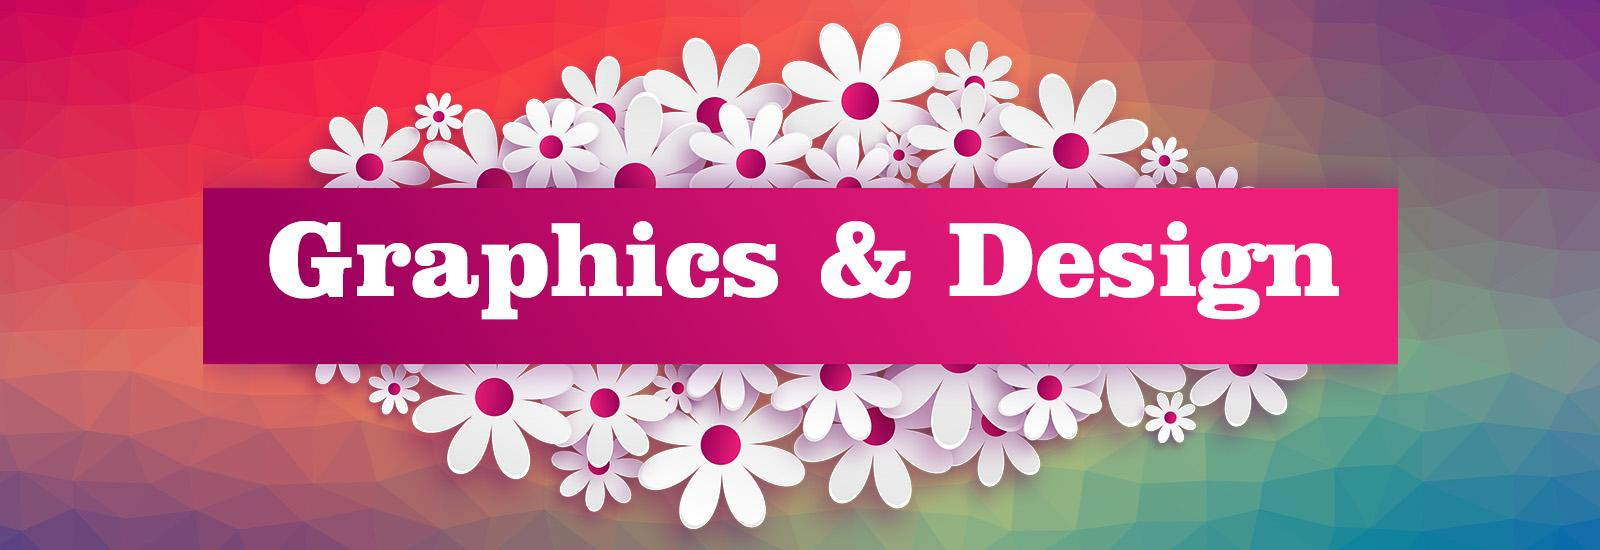 Graphics & Design Banner